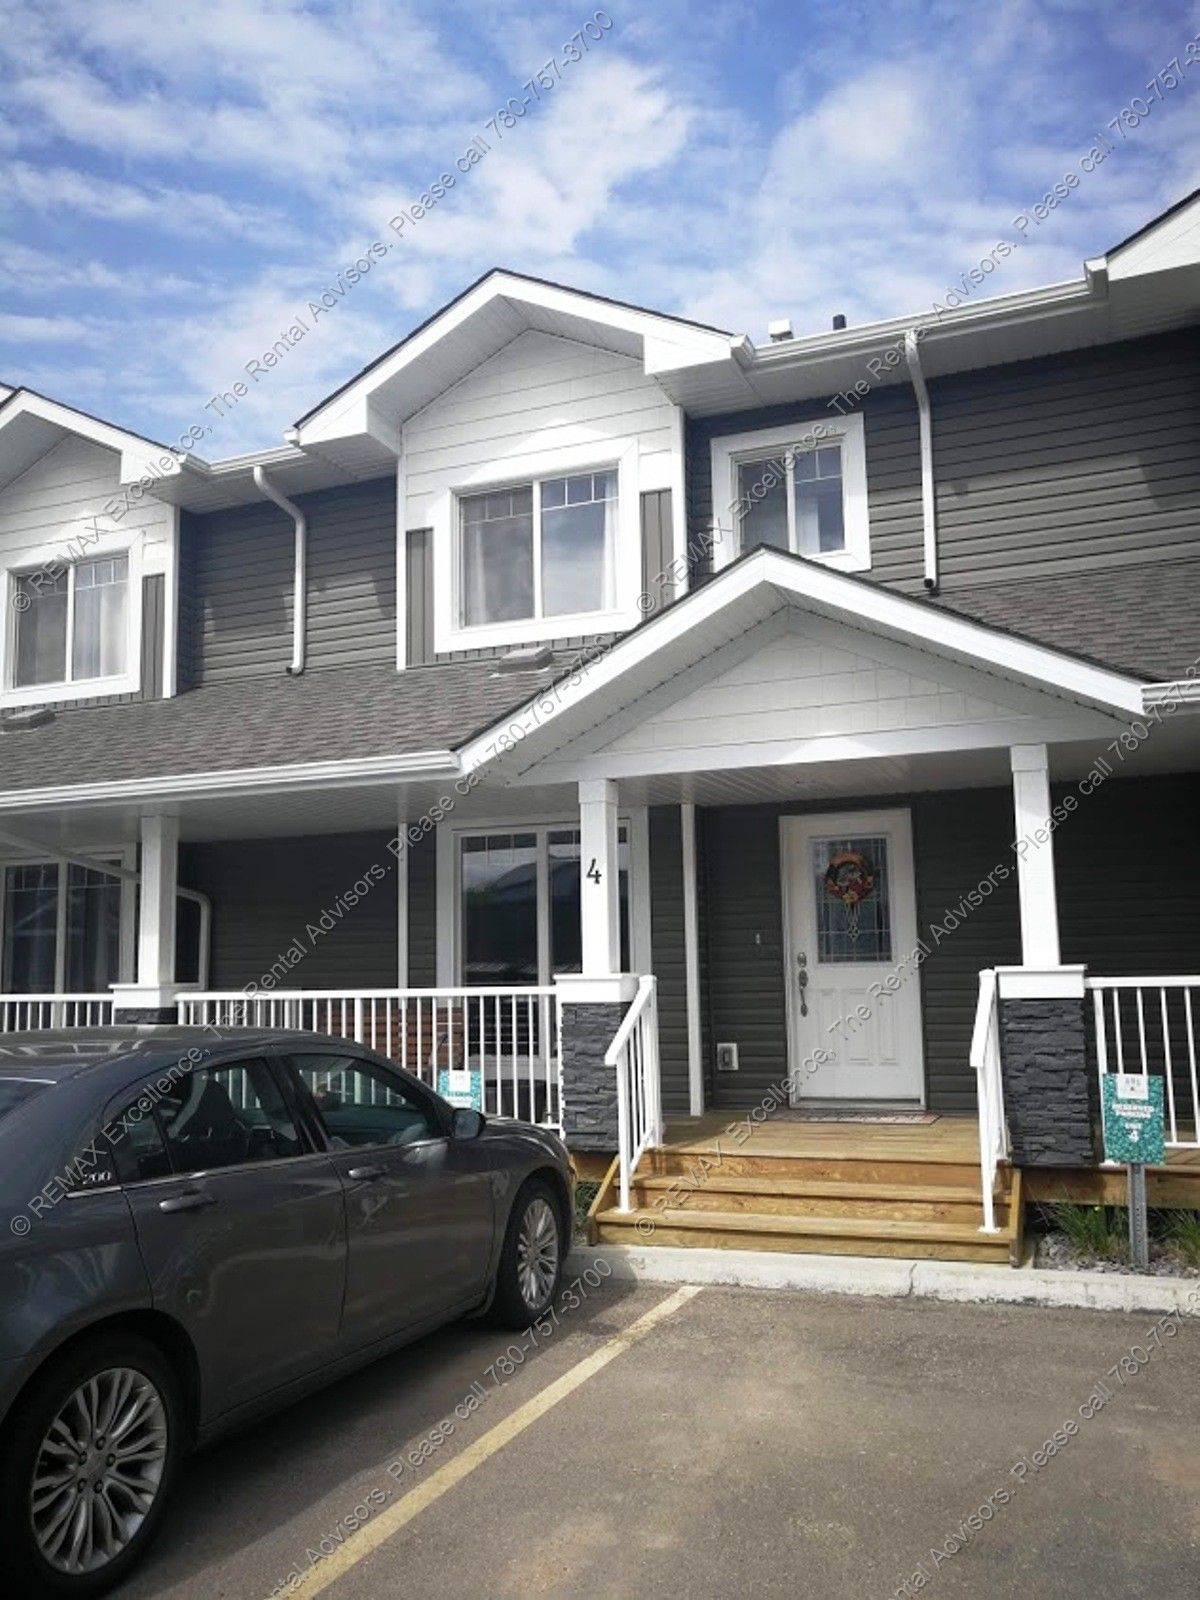 First Month Free Great 3 Bedrooms 2 Storey Townhouse 2 5 Baths In The Community Of Spruce Grove Rental Property Property Property Management